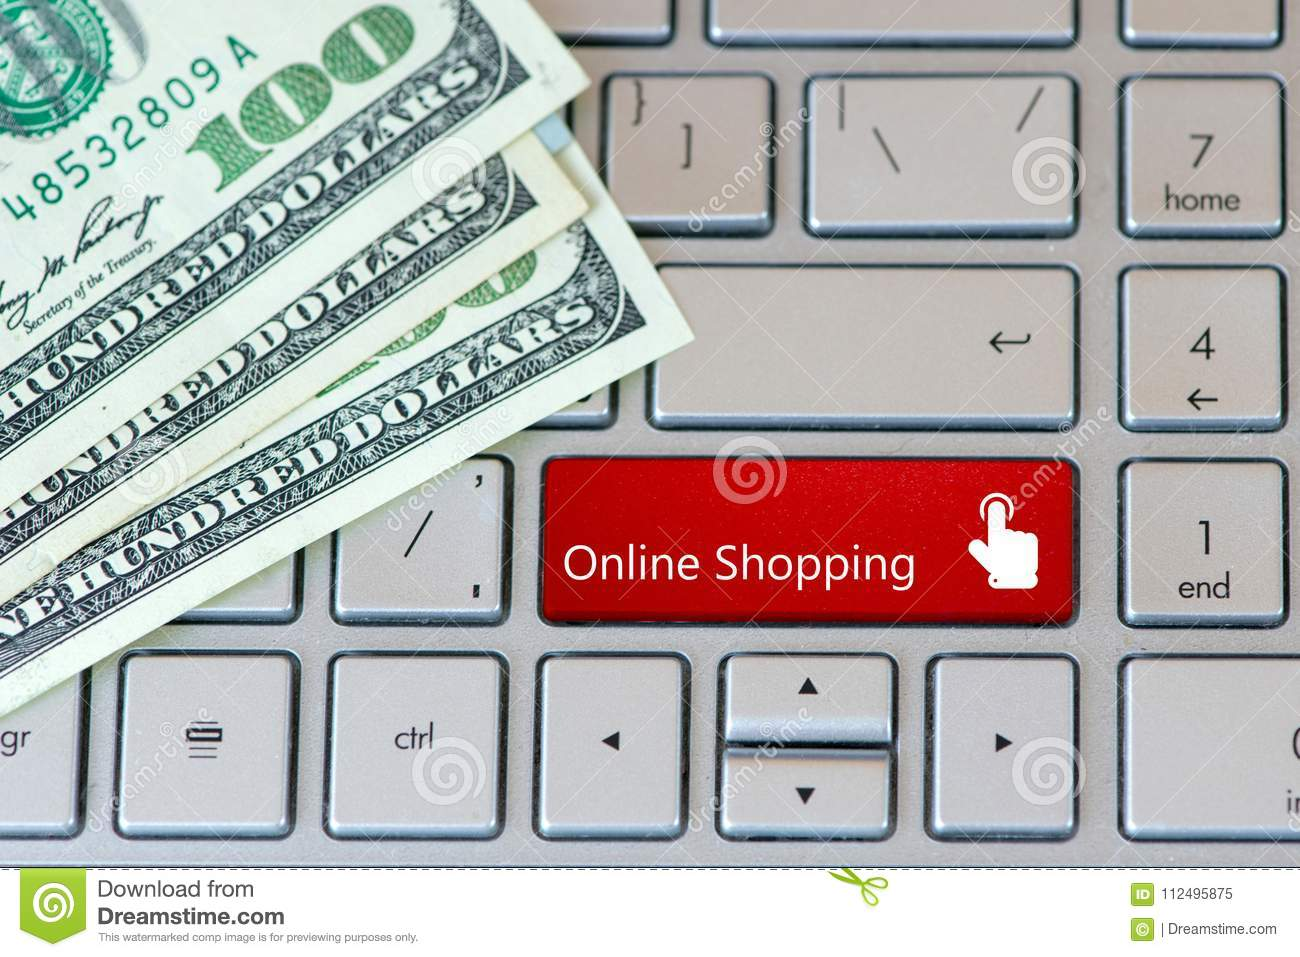 Laptop keyboard with dollar banknotes and red button - Online Shopping